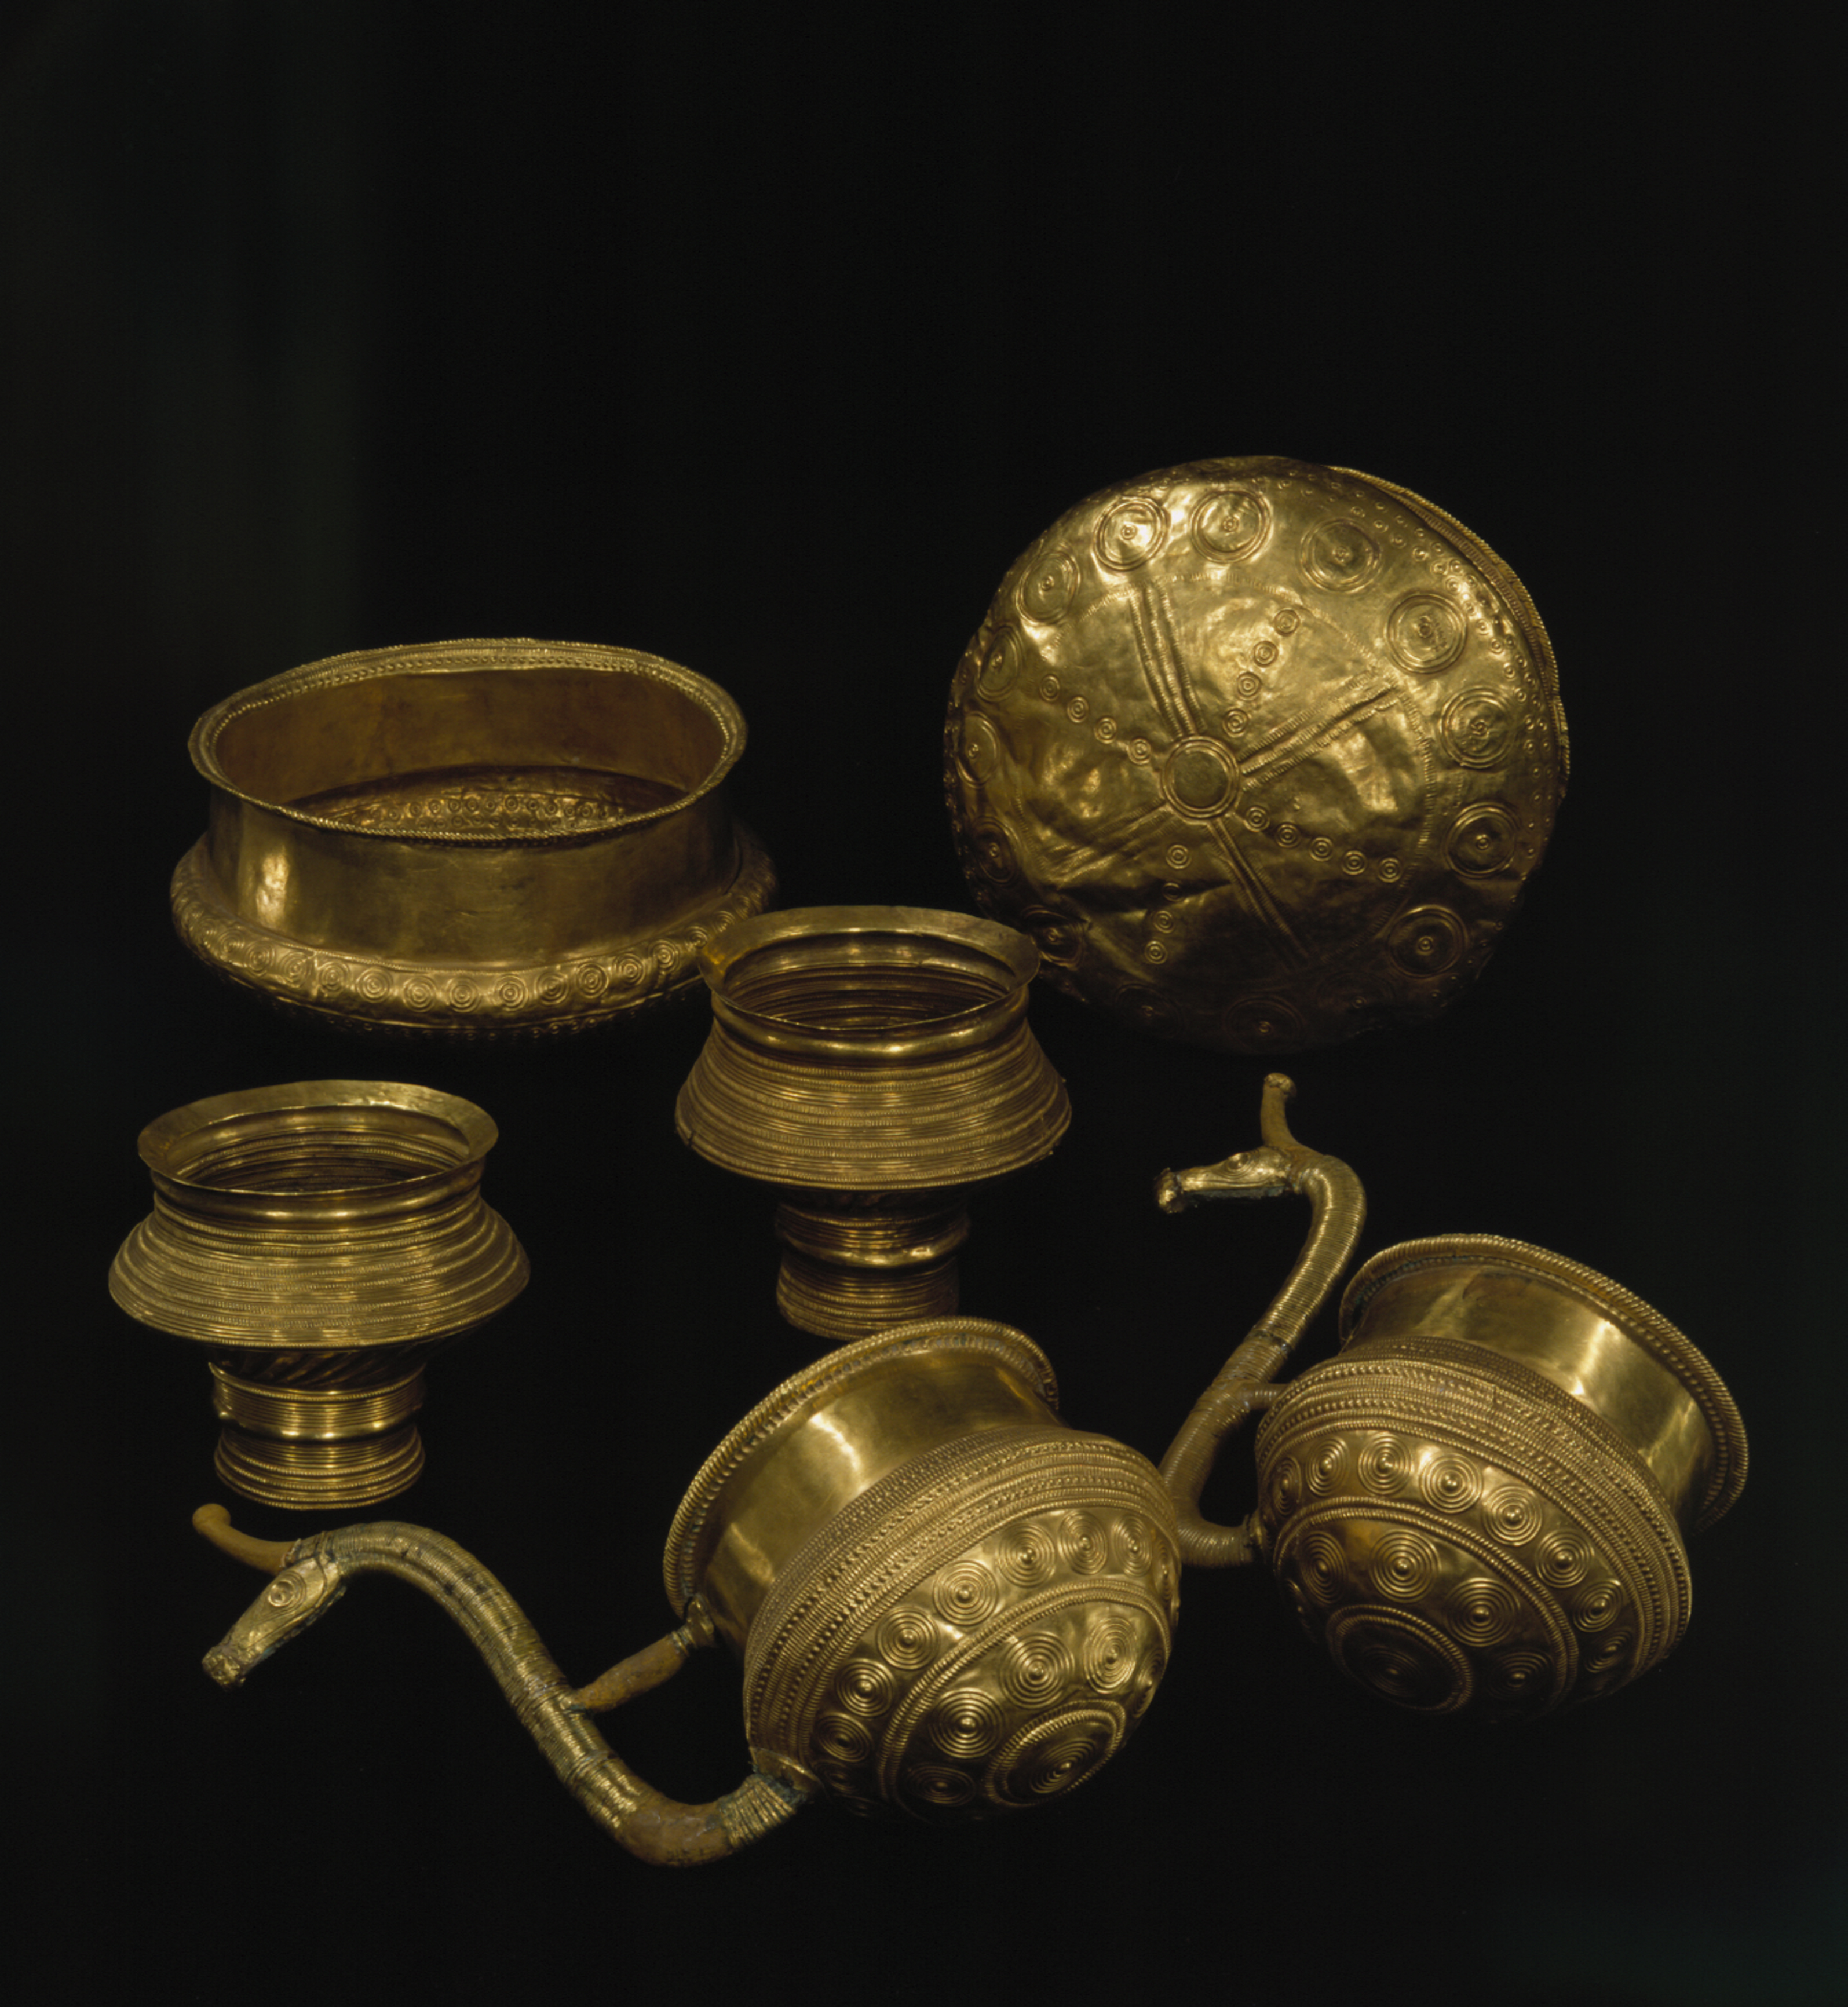 The History Blog Blog Archive 2 000 Bronze Age Gold Spirals